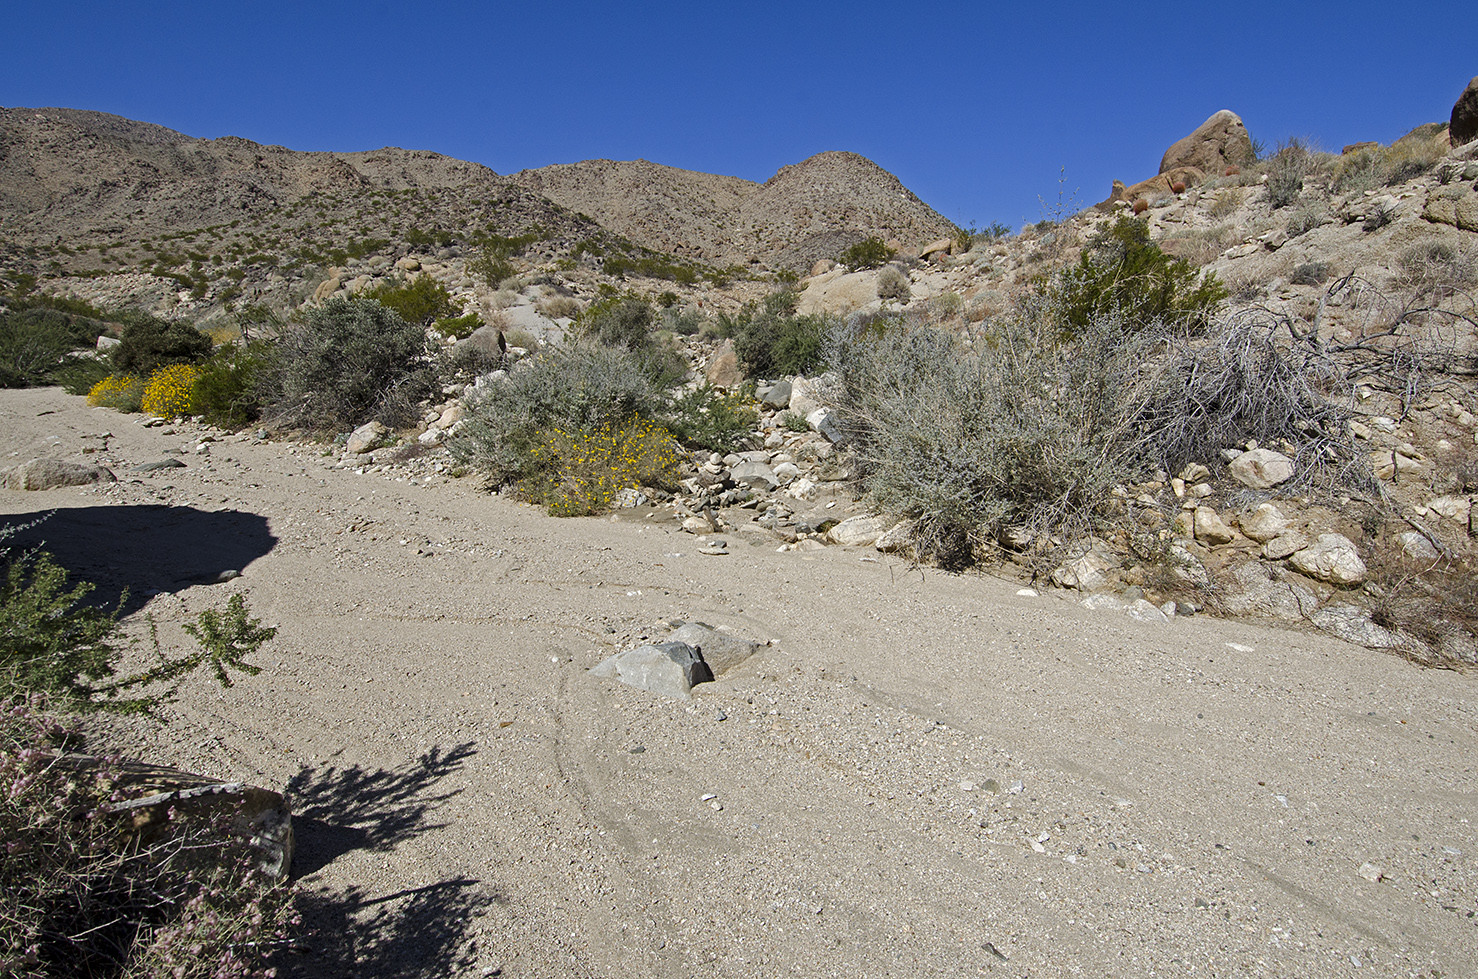 Here's where the road dips down into and crosses the wash, climbing back up again directly across.